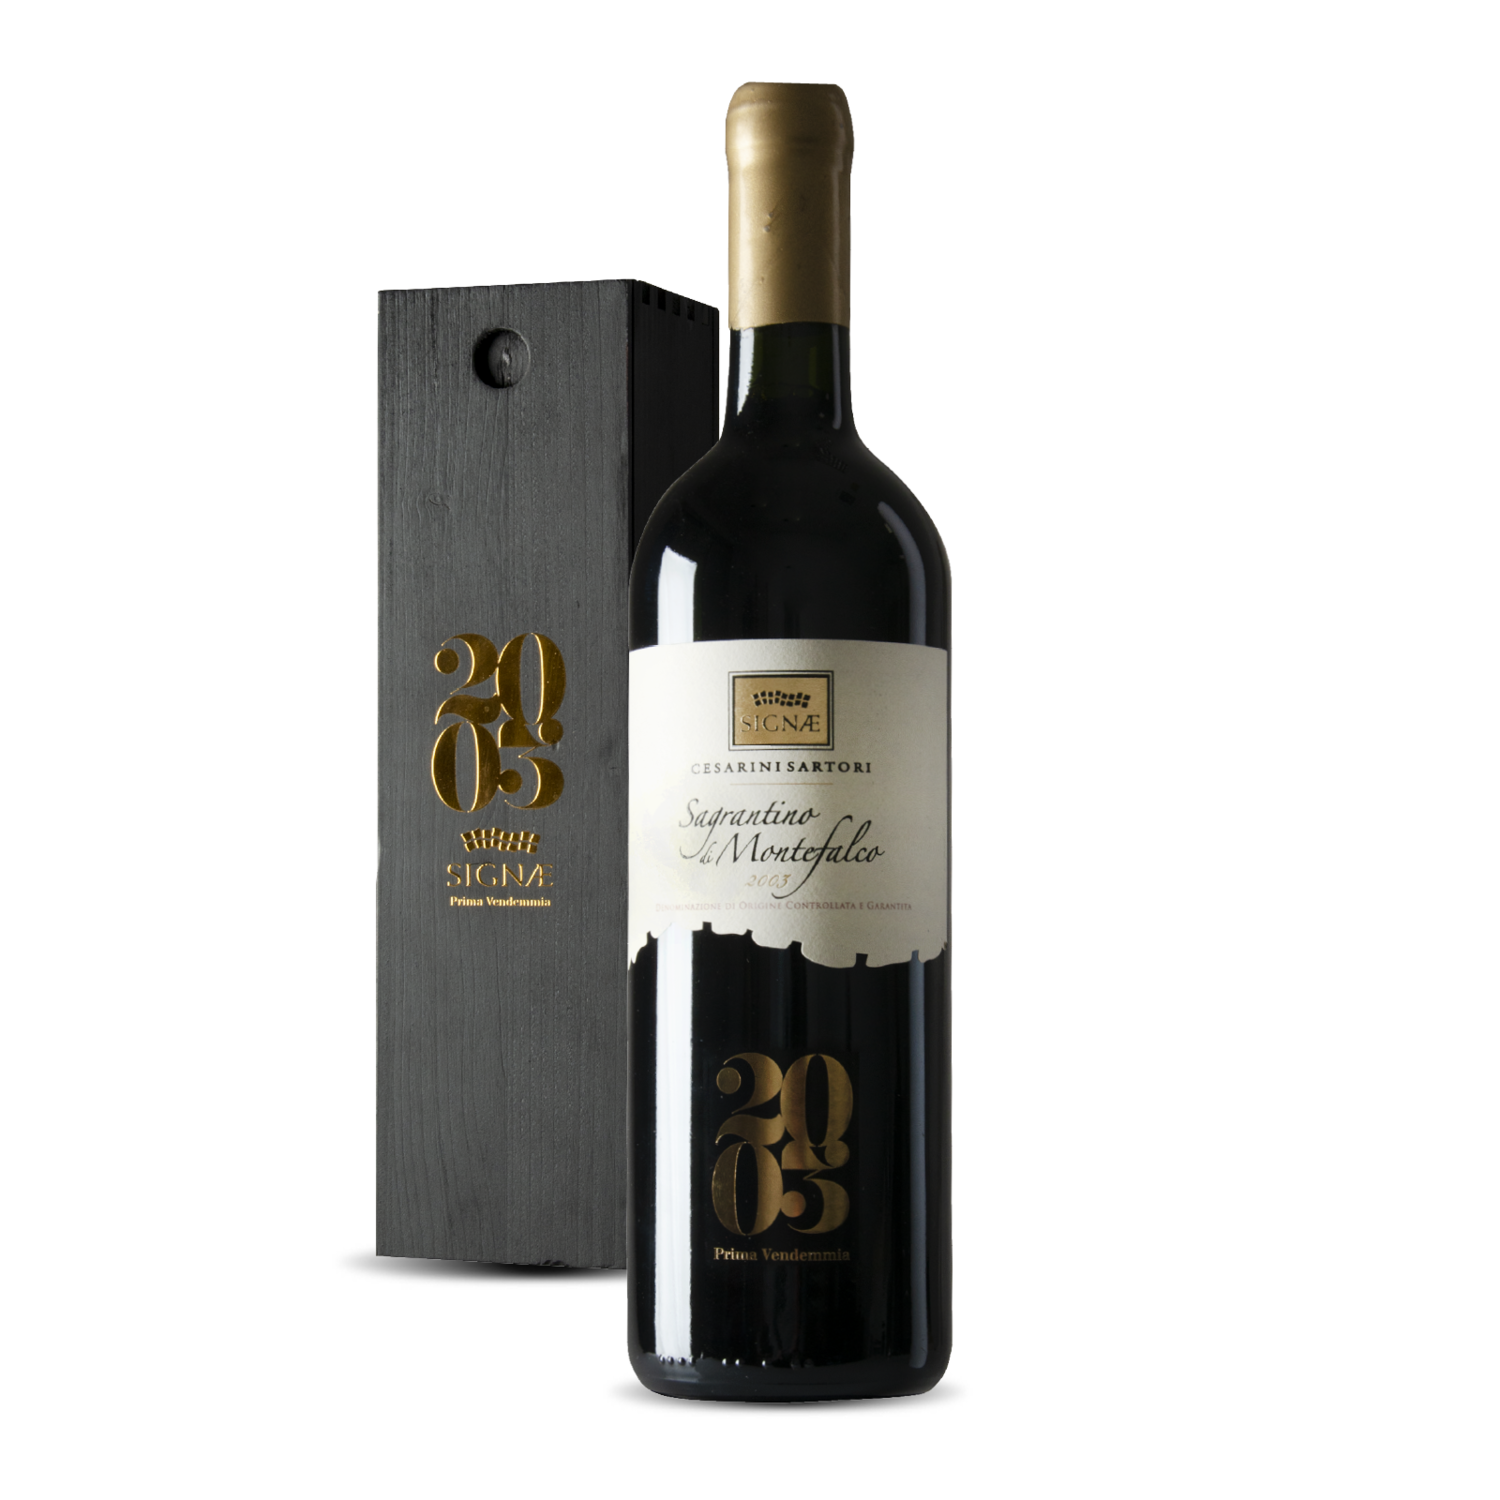 """Limited Edition """"First Harvest"""" - Sagrantino di Montefalco DOCG 2003"""